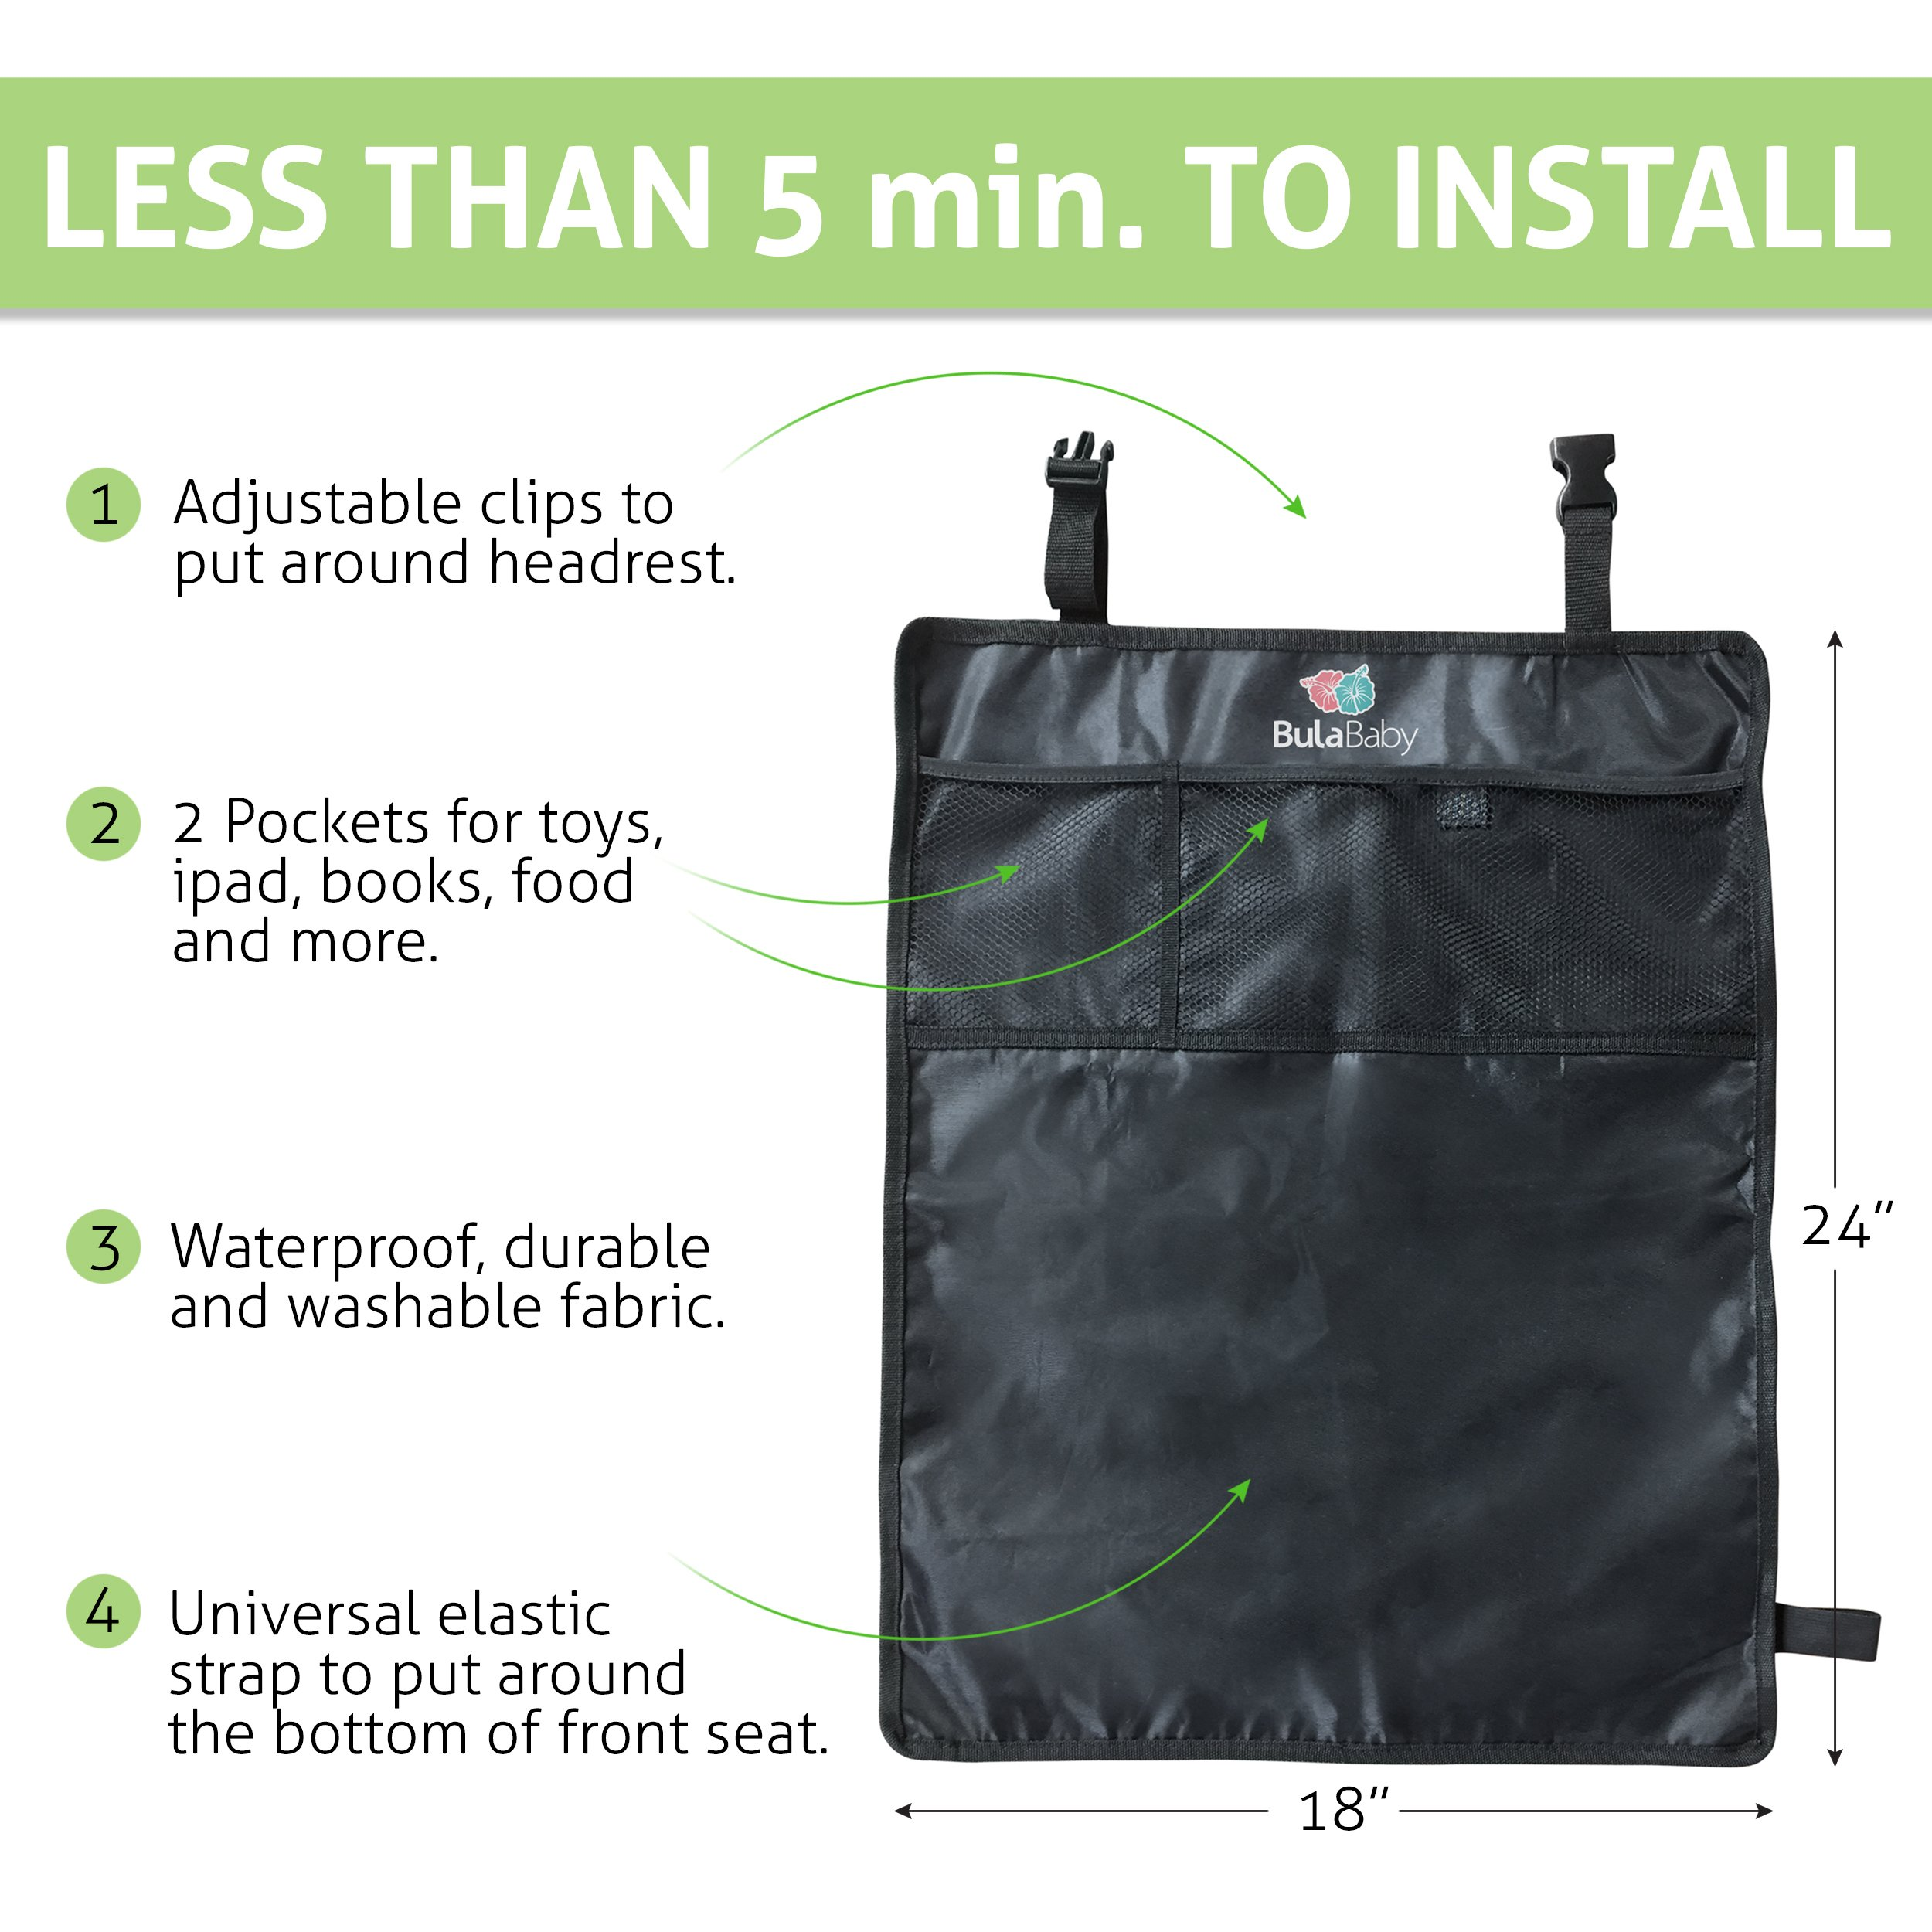 Bula Baby - Back of Seat Protector - 2 Count - Complete With Pocket Organizer by Bula Baby (Image #4)